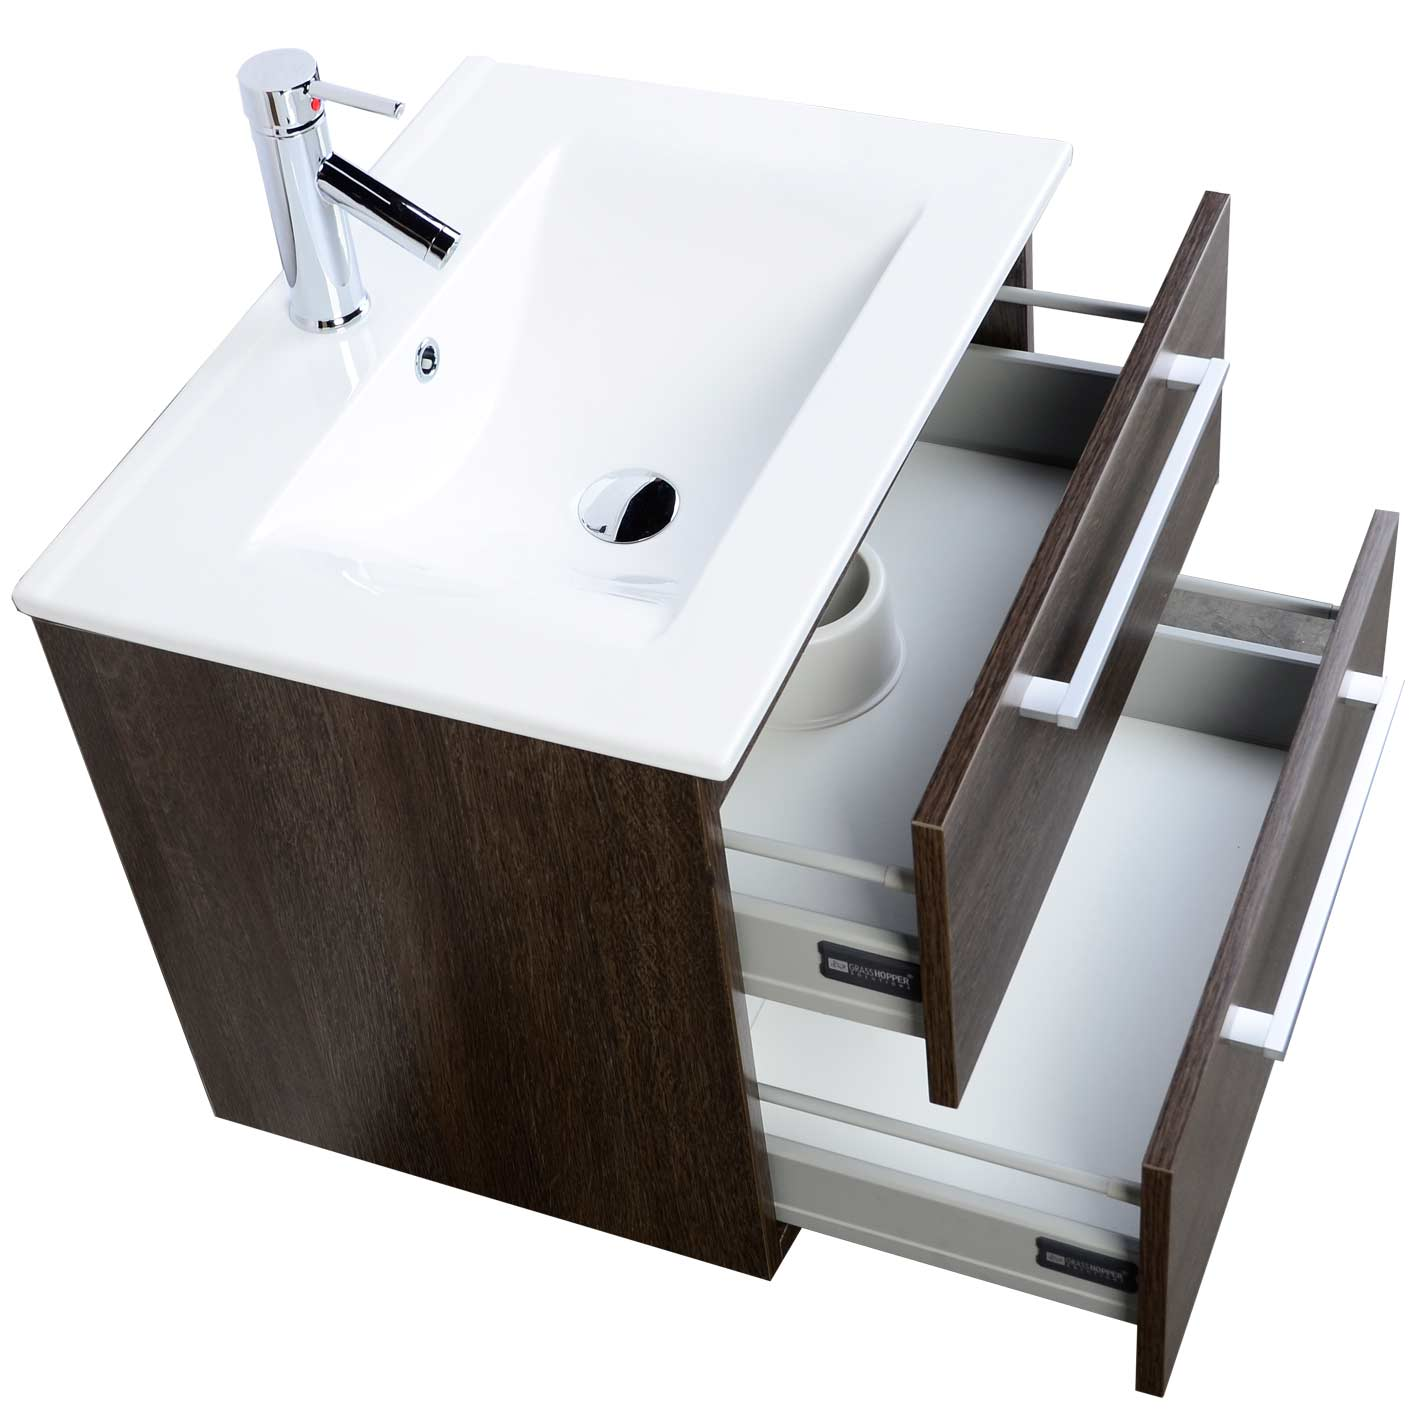 "european styled caen 23.5"" single bathroom vanity set in alamo oak"